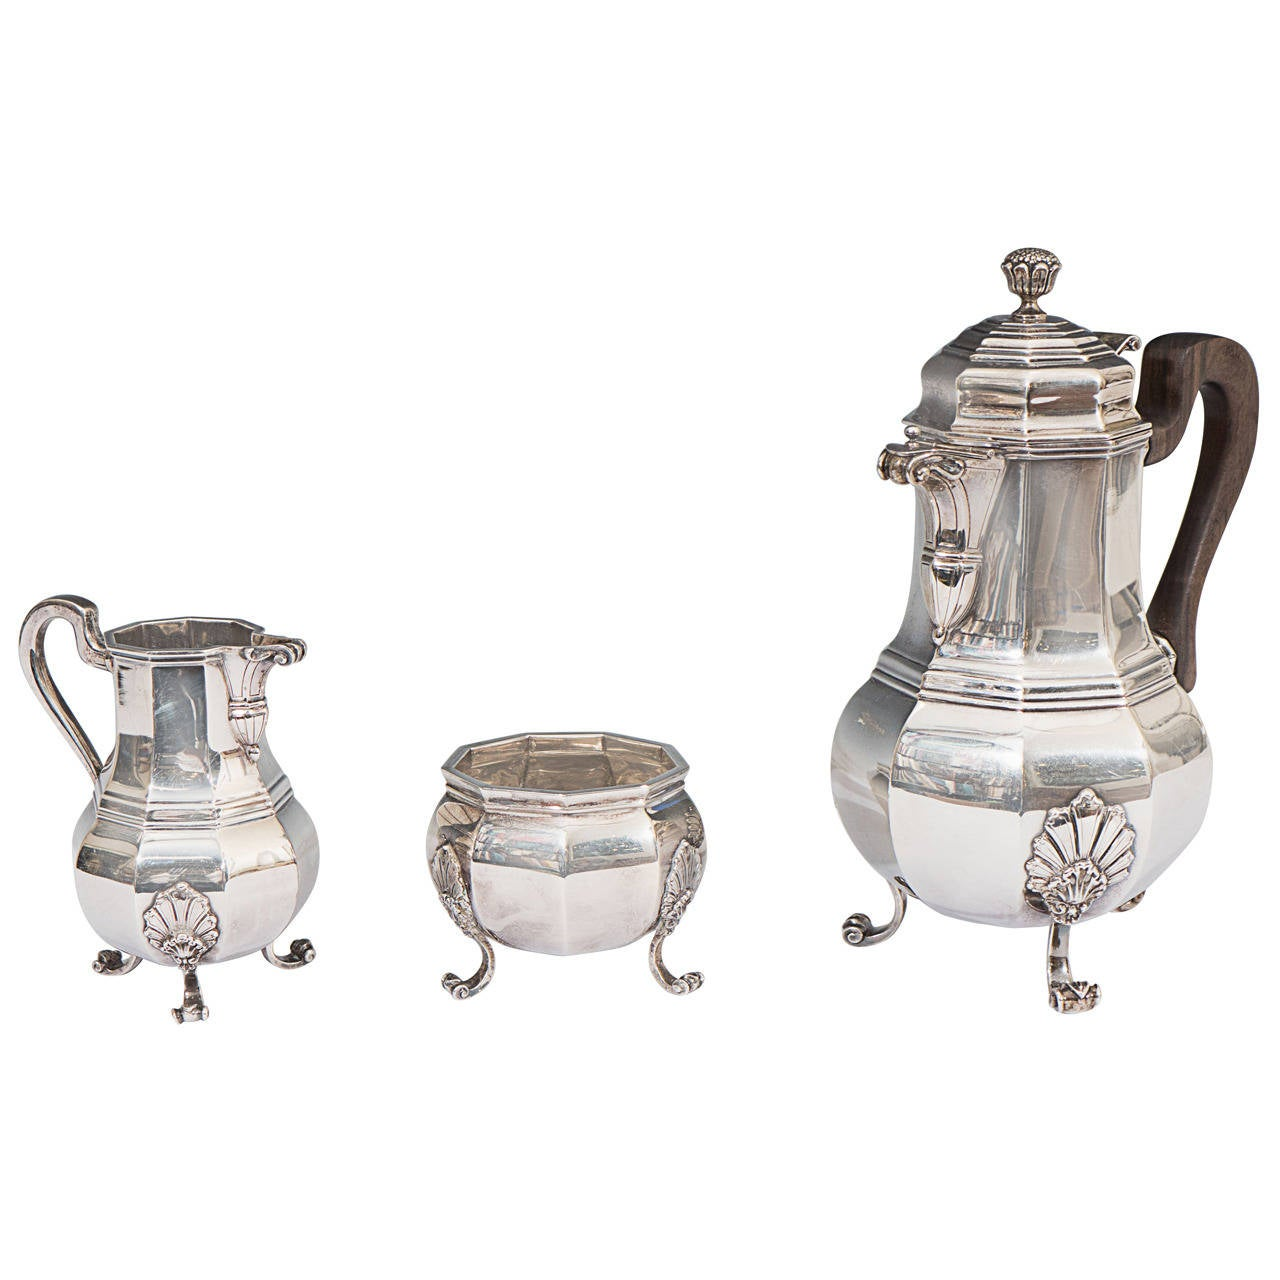 Tiffany & Co. Sterling Silver Three-Piece Tea Set